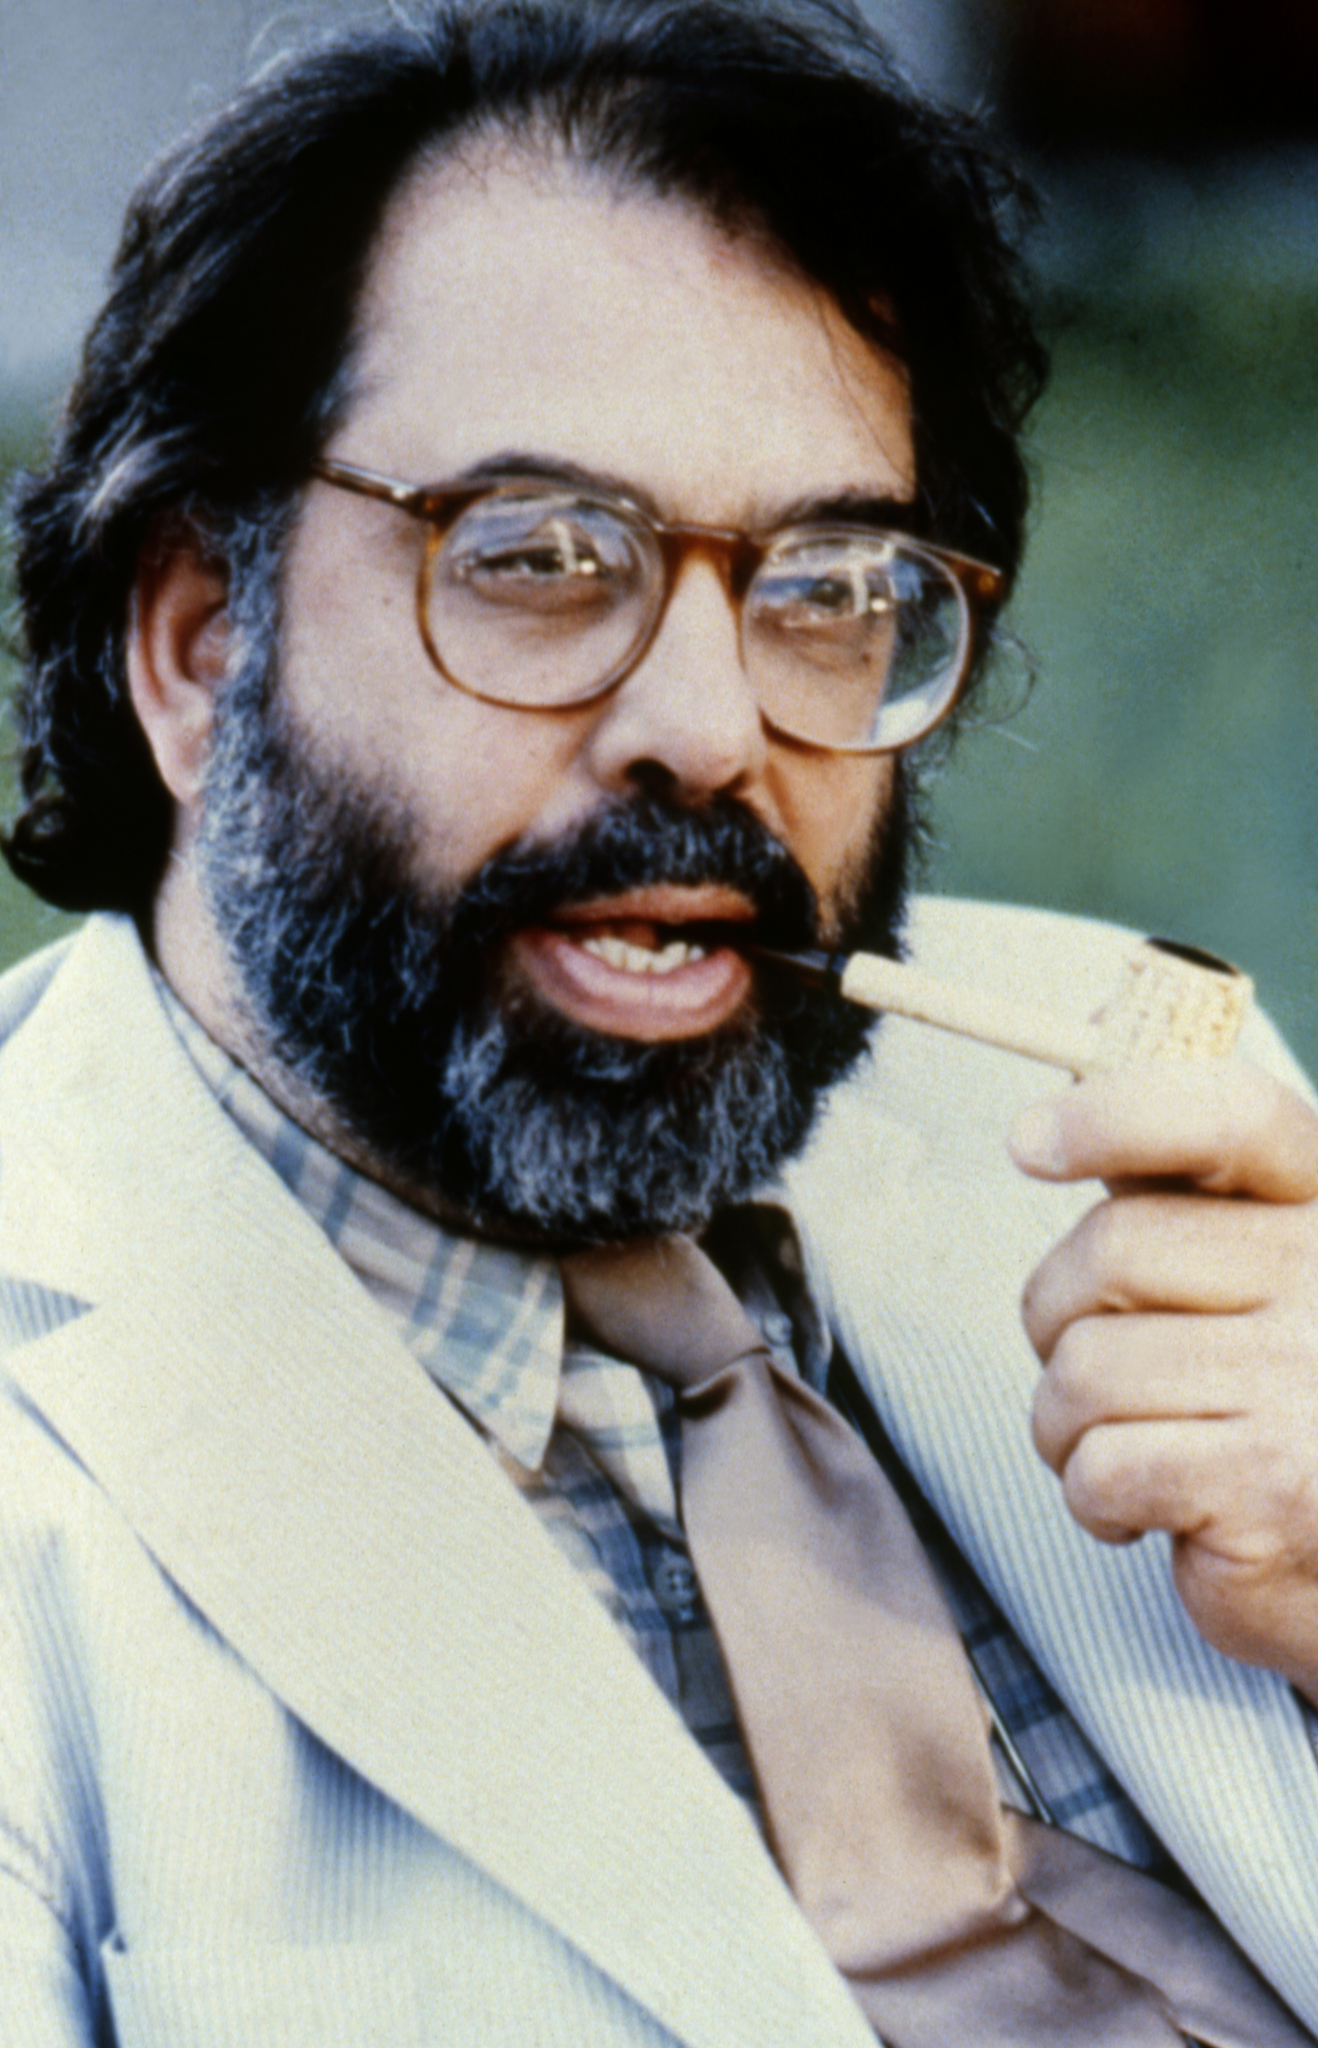 Francis Ford Coppola in Peggy Sue Got Married (1986)